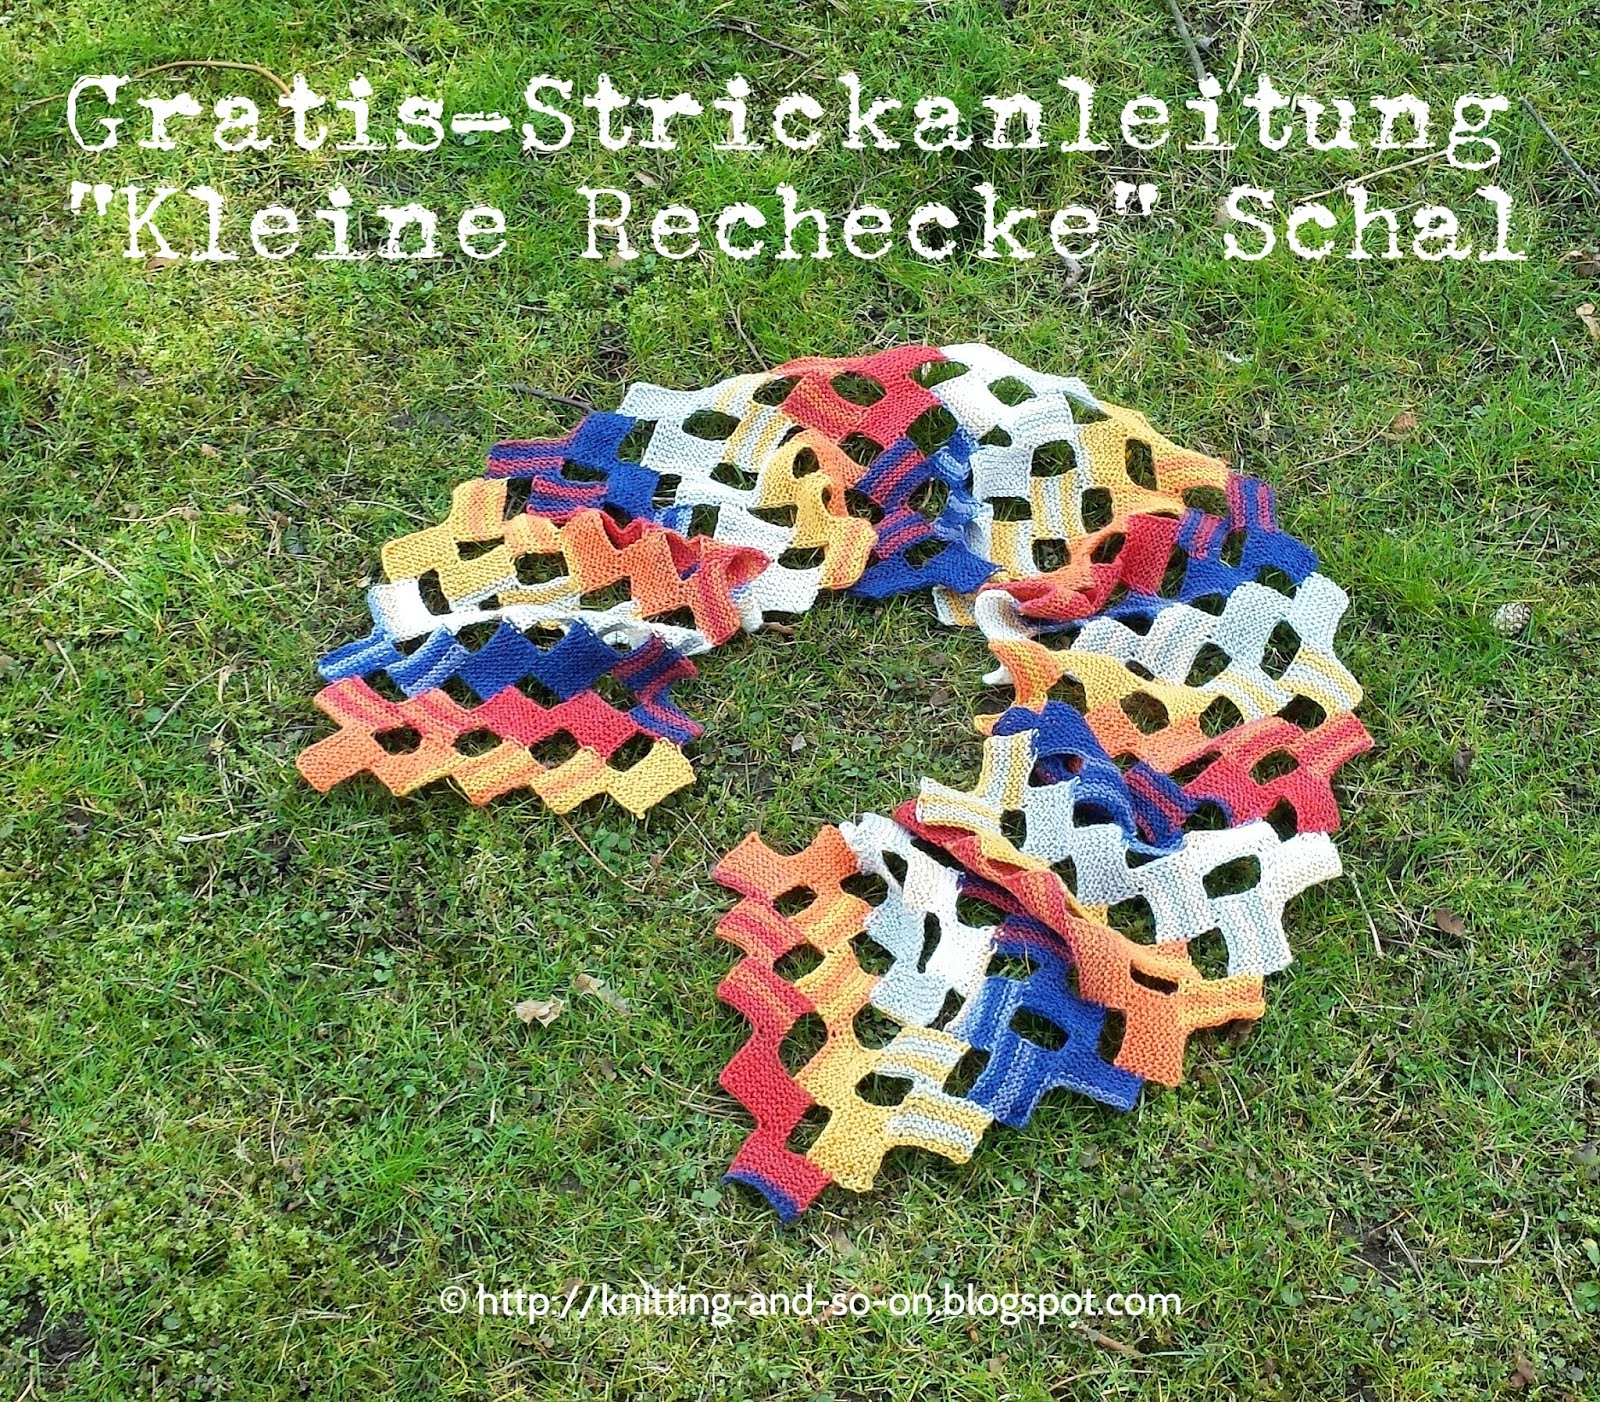 Gratis-Strickanleitung: Kleine Rechtecke-Schal (knitting-and-so-on.blogspot.com)